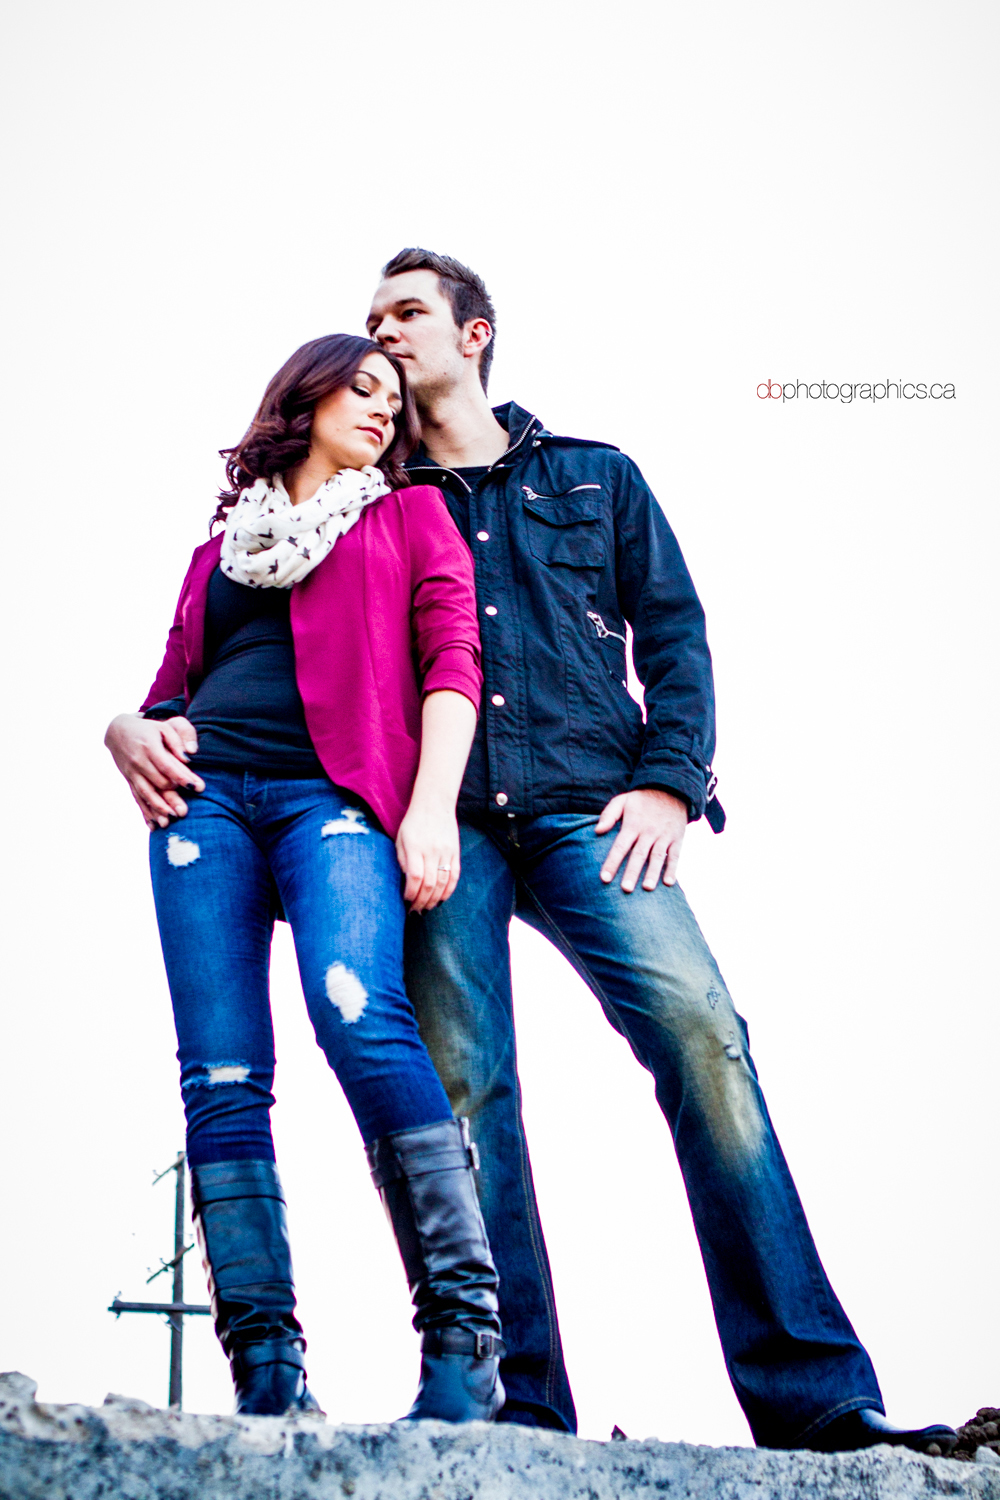 Gaea & Kurt - Engagement Session - 20131020 - 0061.jpg